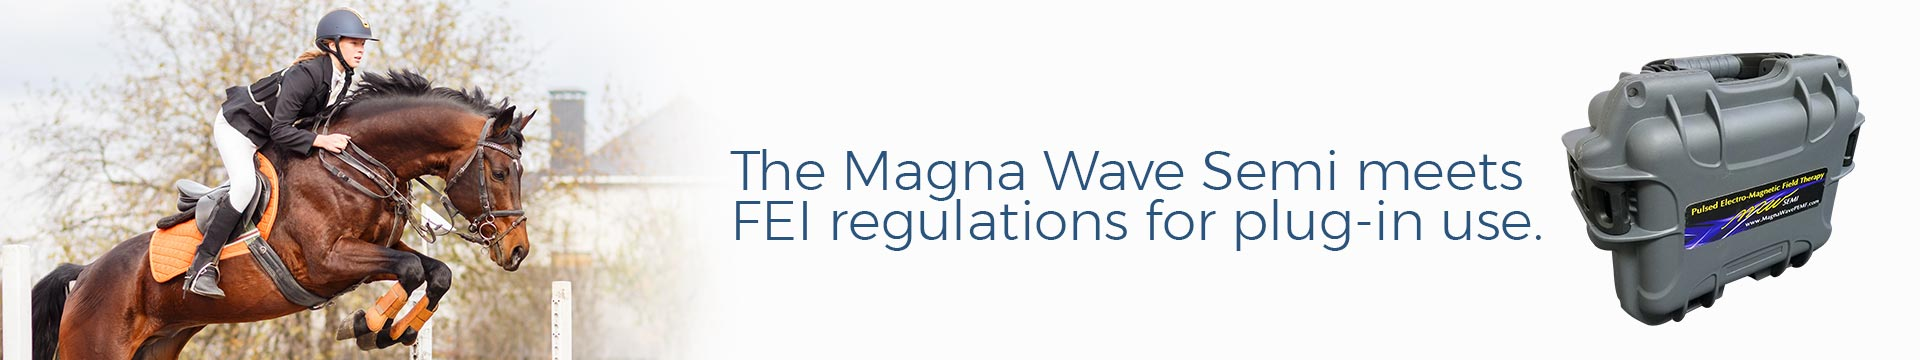 The Magna Wave Semi meets FEI regulations for plug-in use.